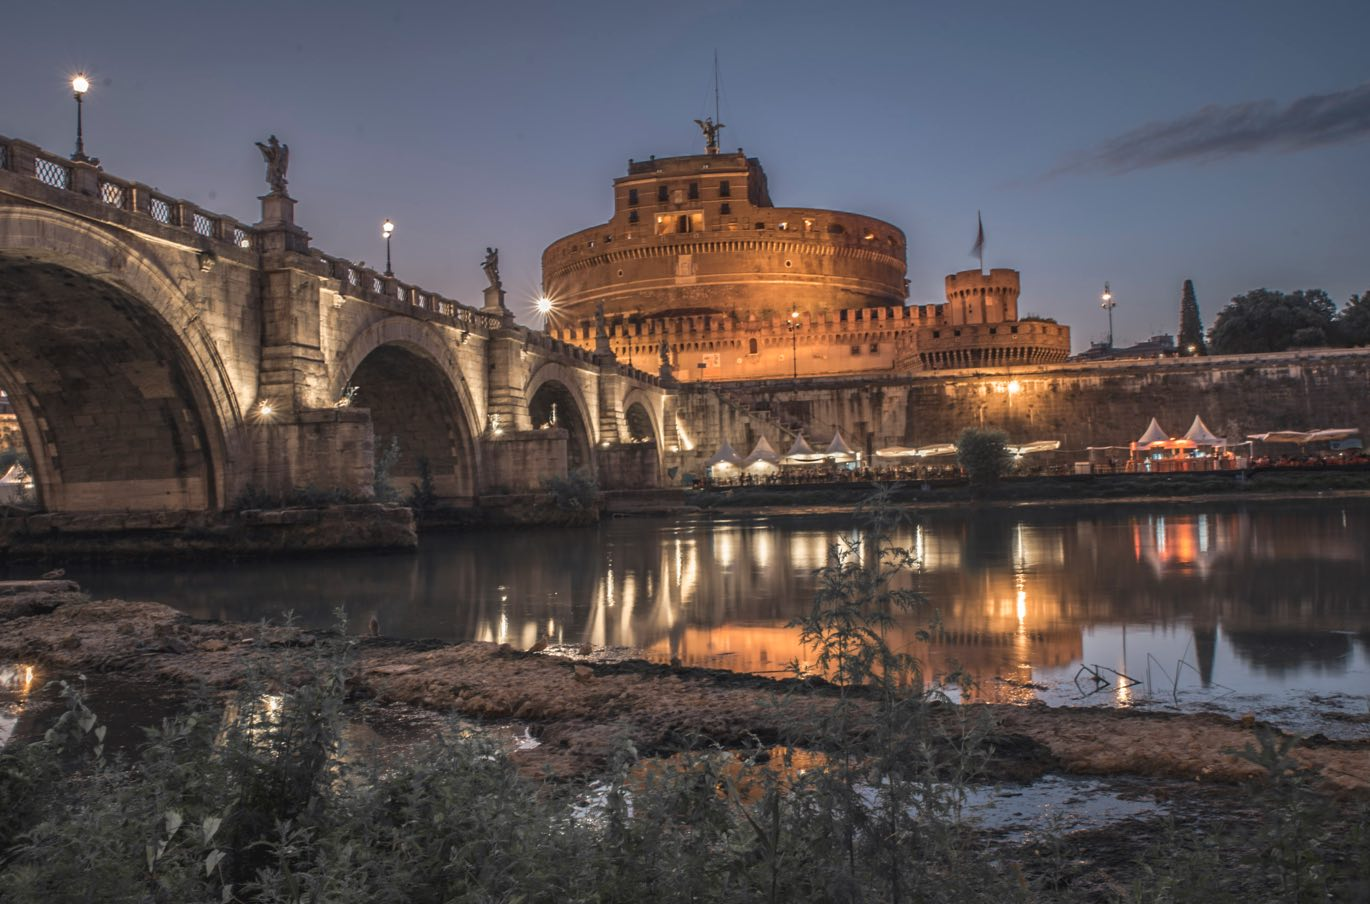 Castel Sant'Angelo - 3 Days in Rome Itinerary